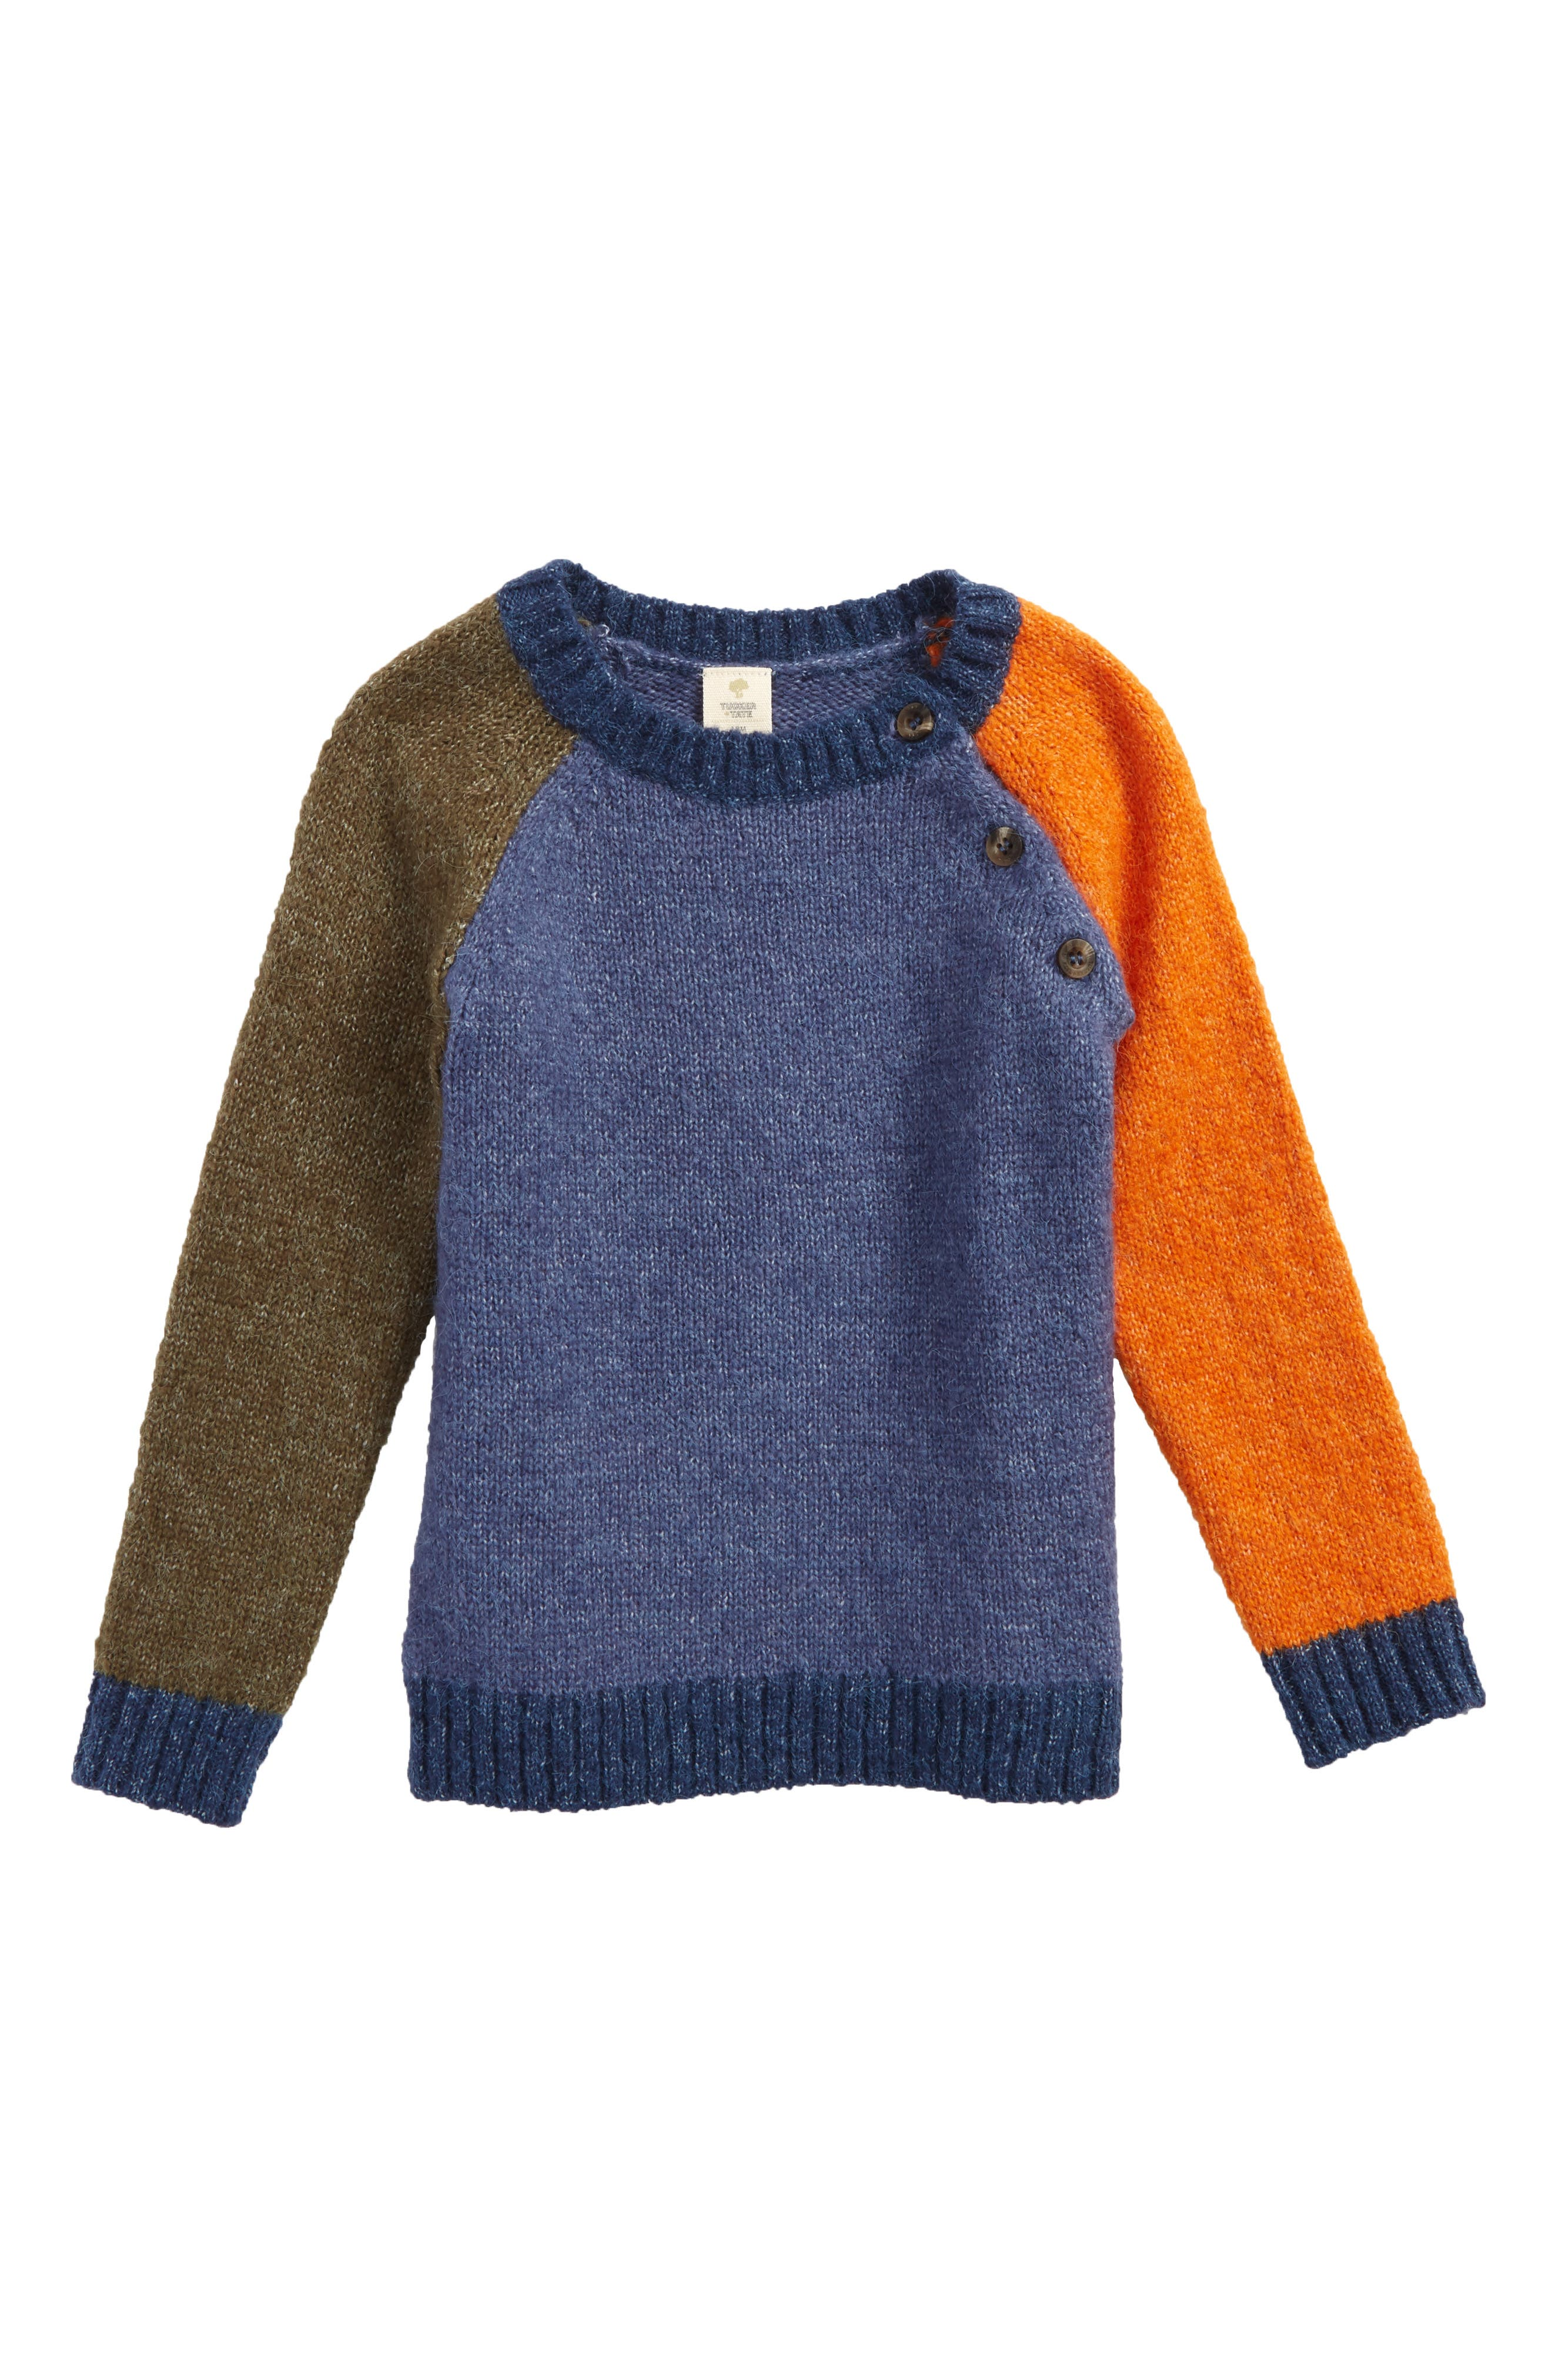 Tucker + Tate Colorblock Sweater (Baby Boys)